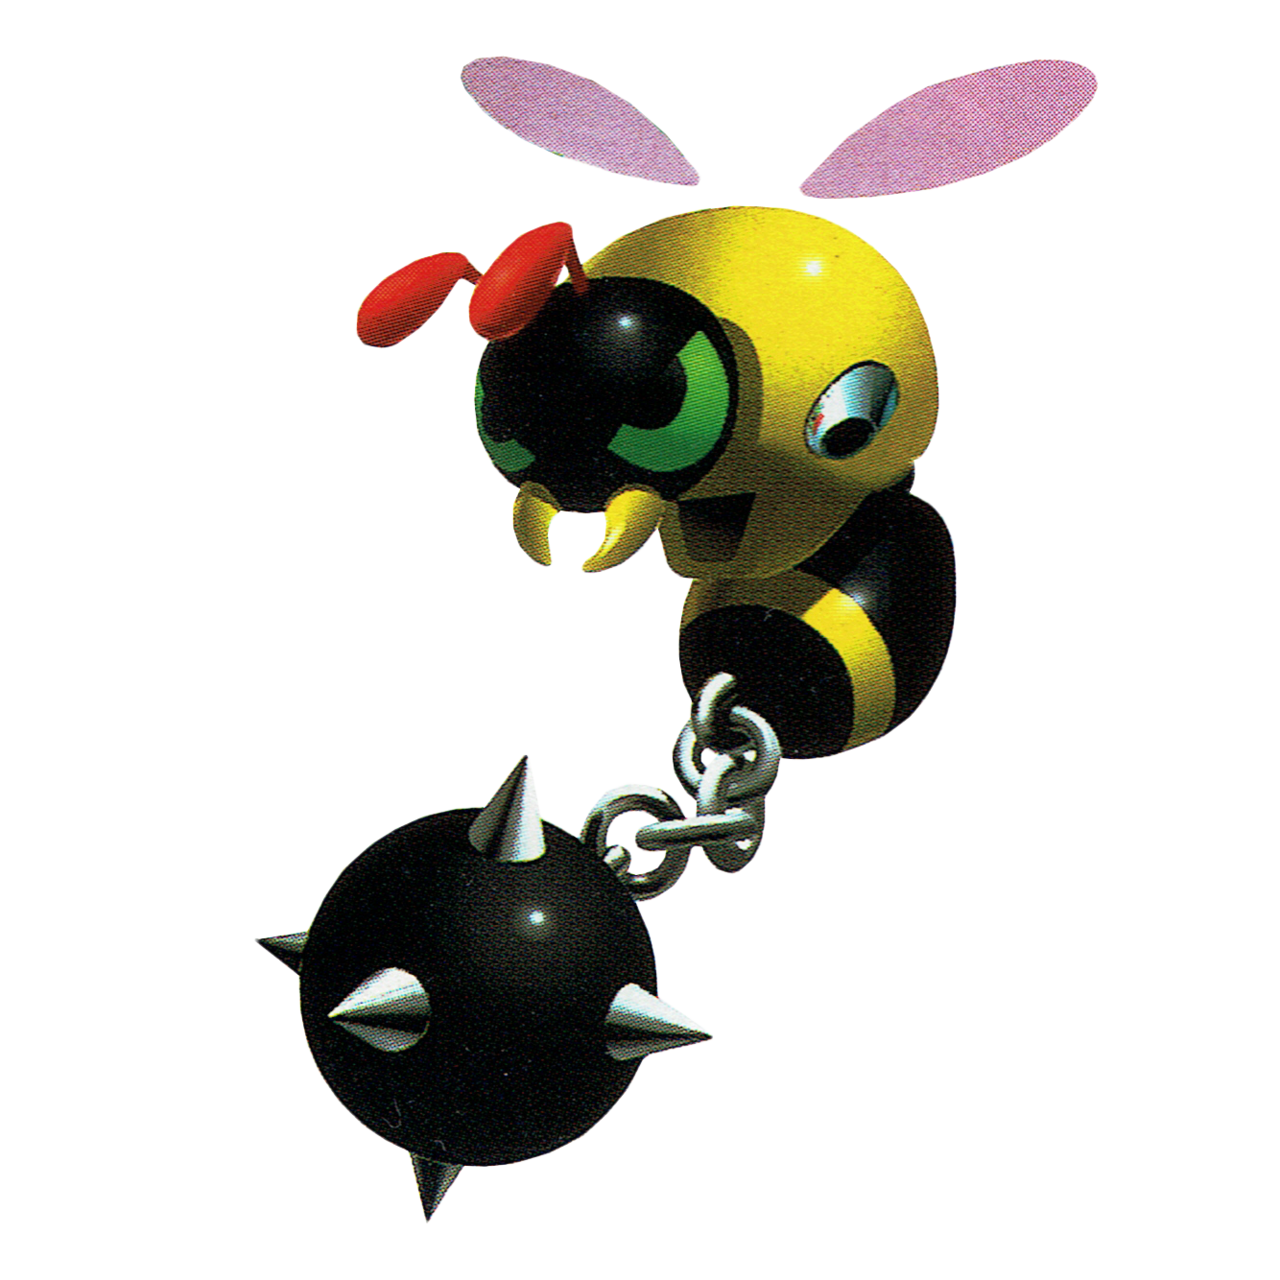 File:Poh-Bee.png